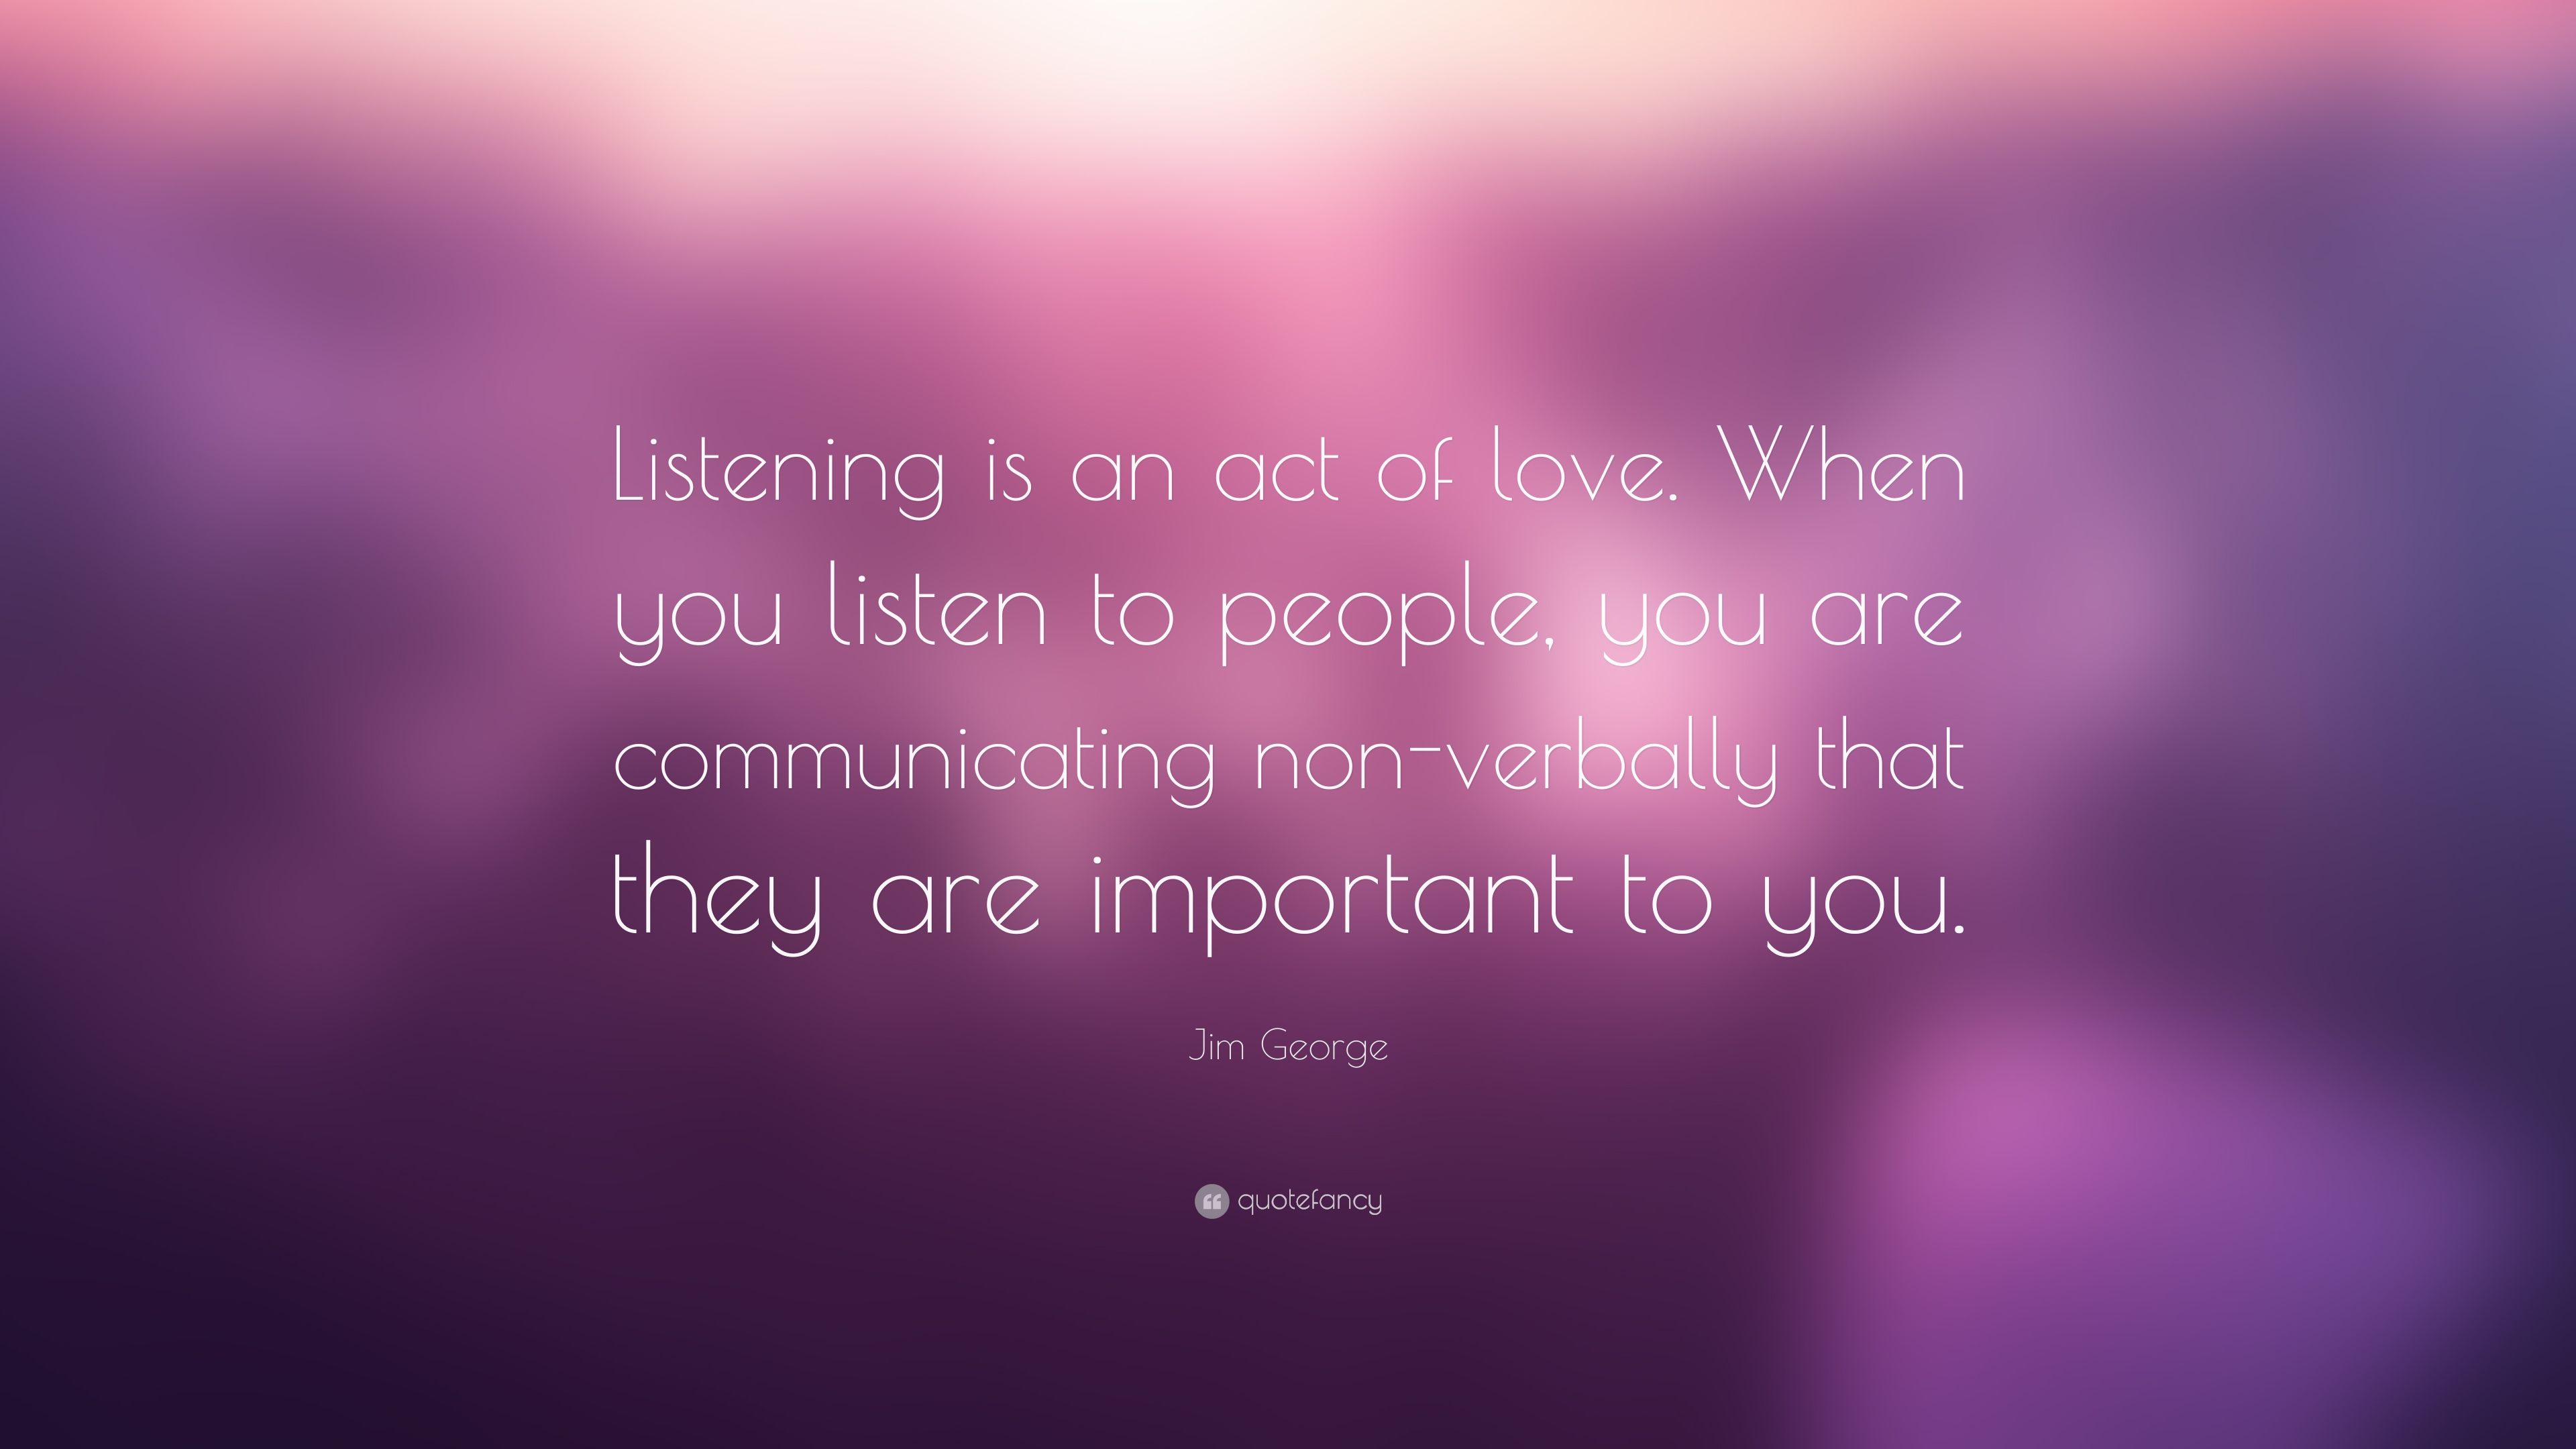 jim george quote listening is an act of love when you listen to